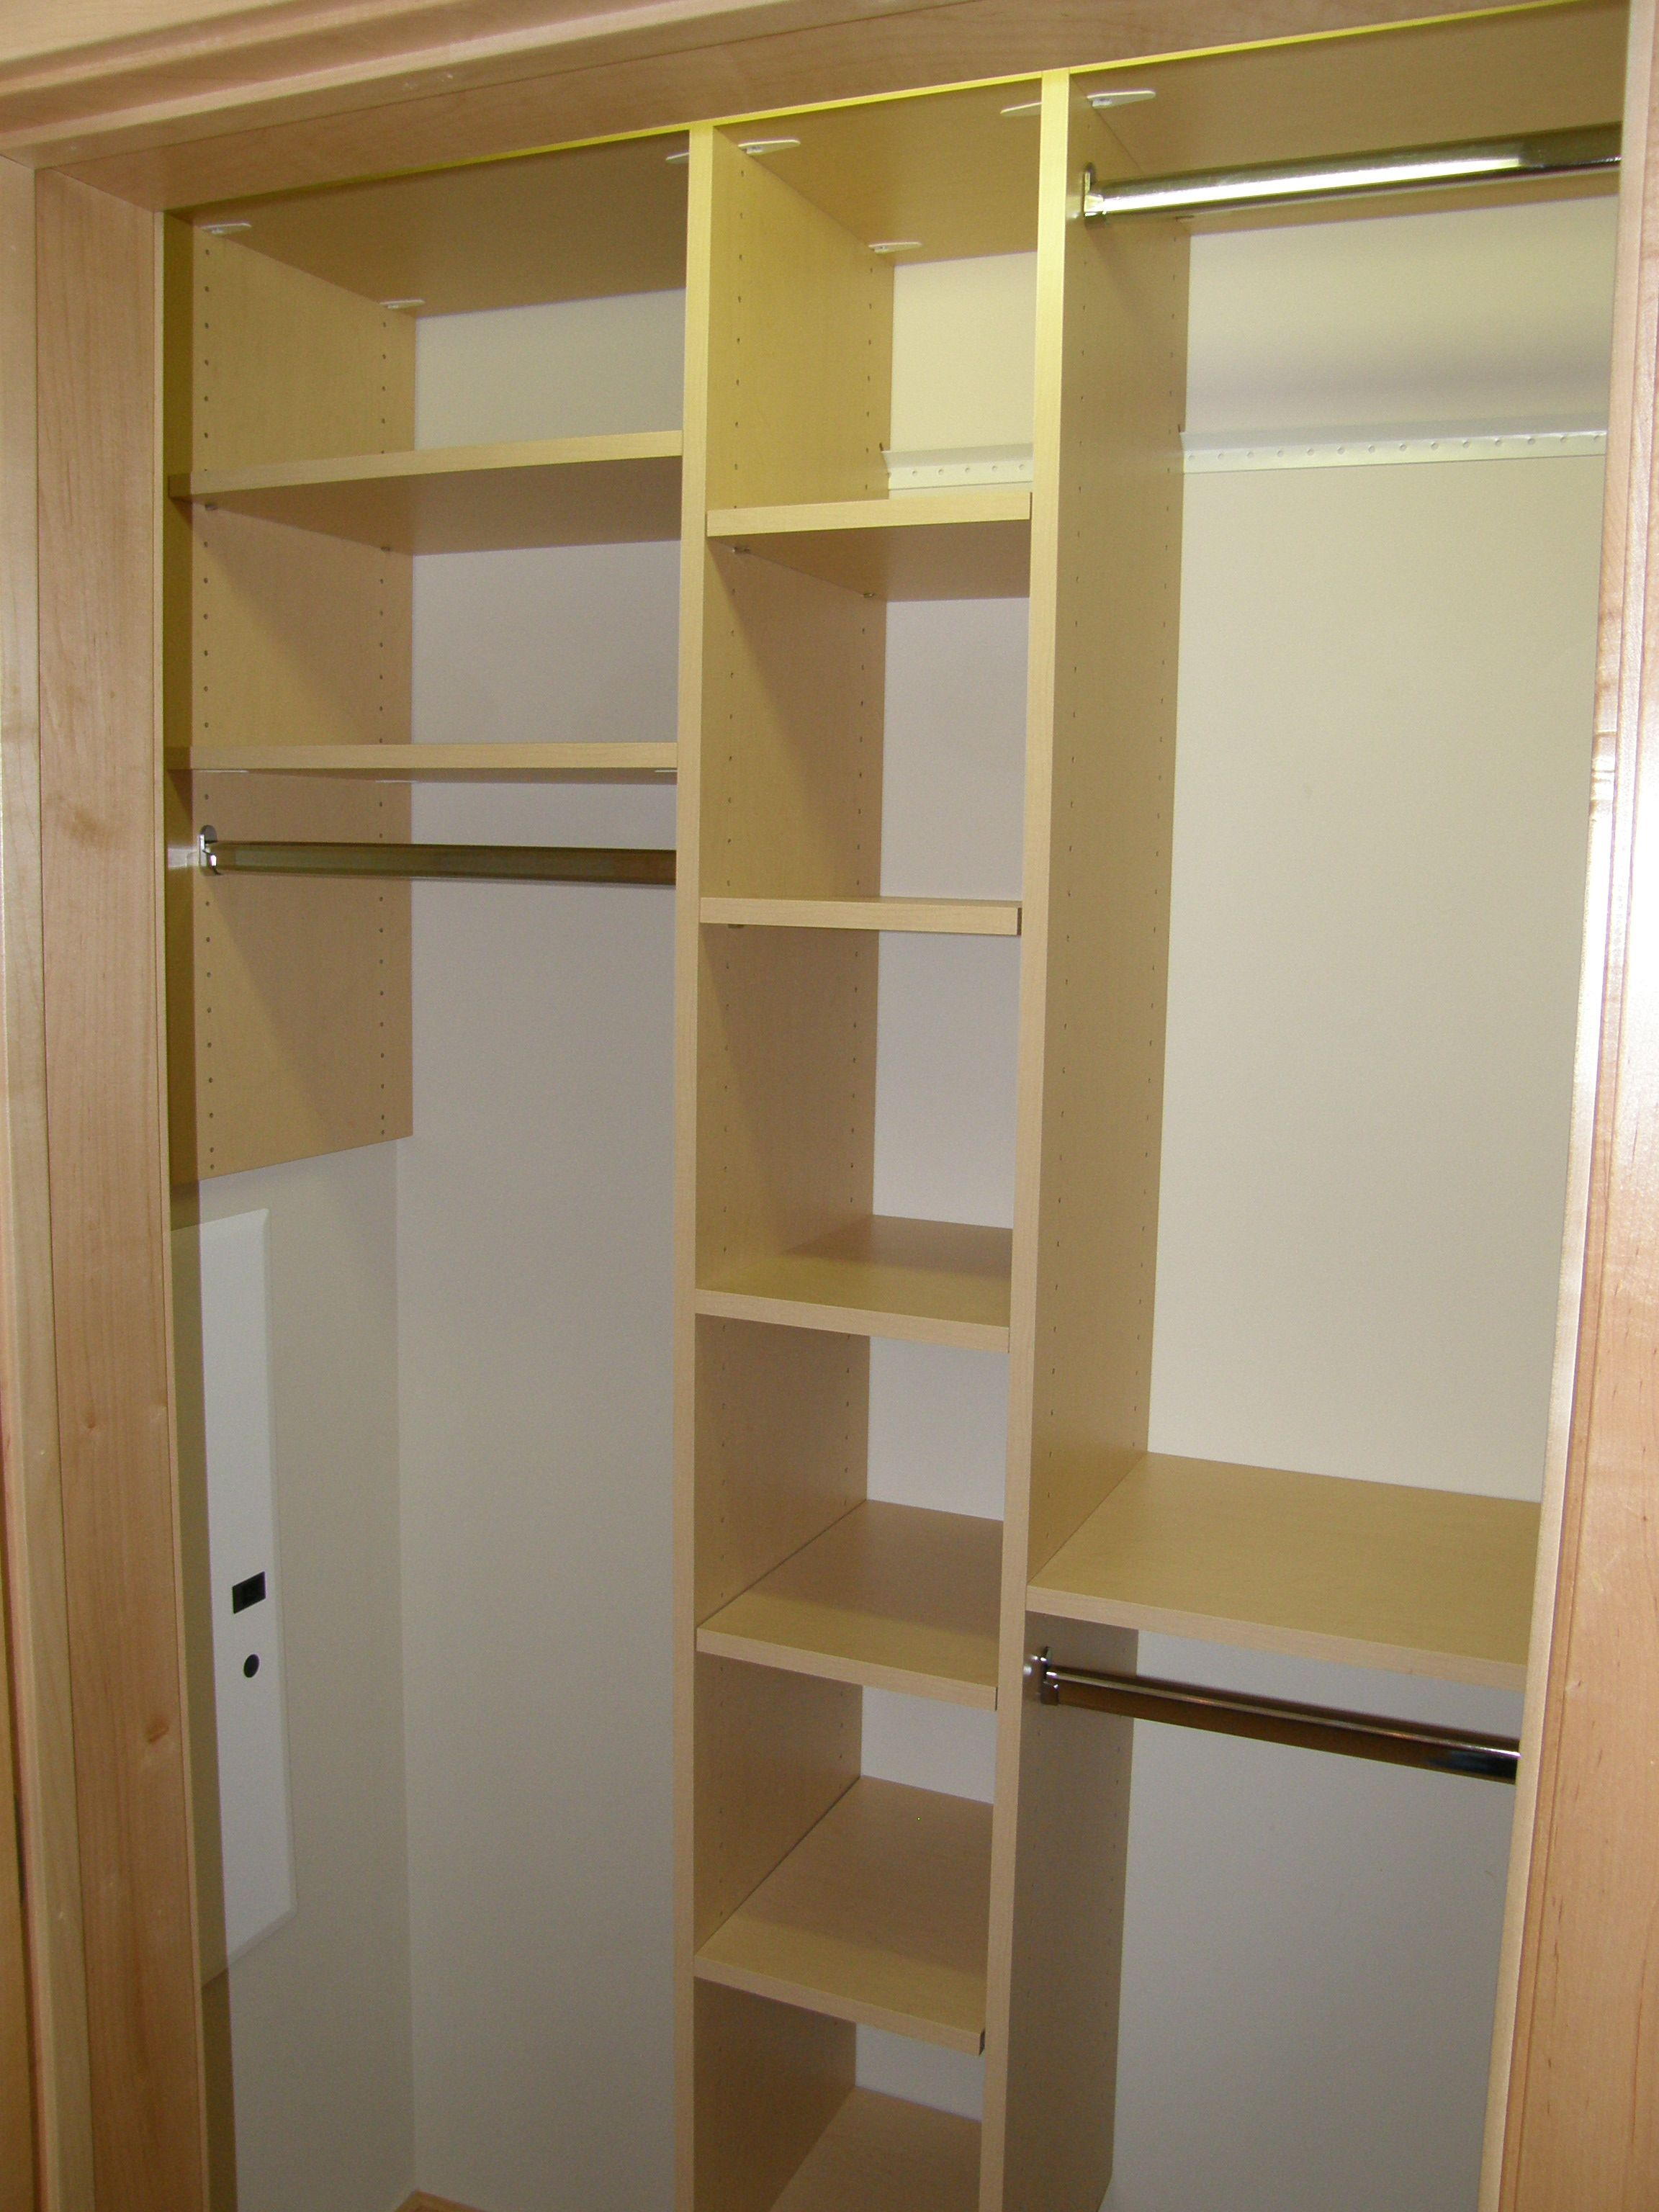 Front Entry Custom Organization By Closets For Life   Multiple Closet Rods  At Different Heights Make It Easy For Both Parents And Children To Hang Up  Their ...